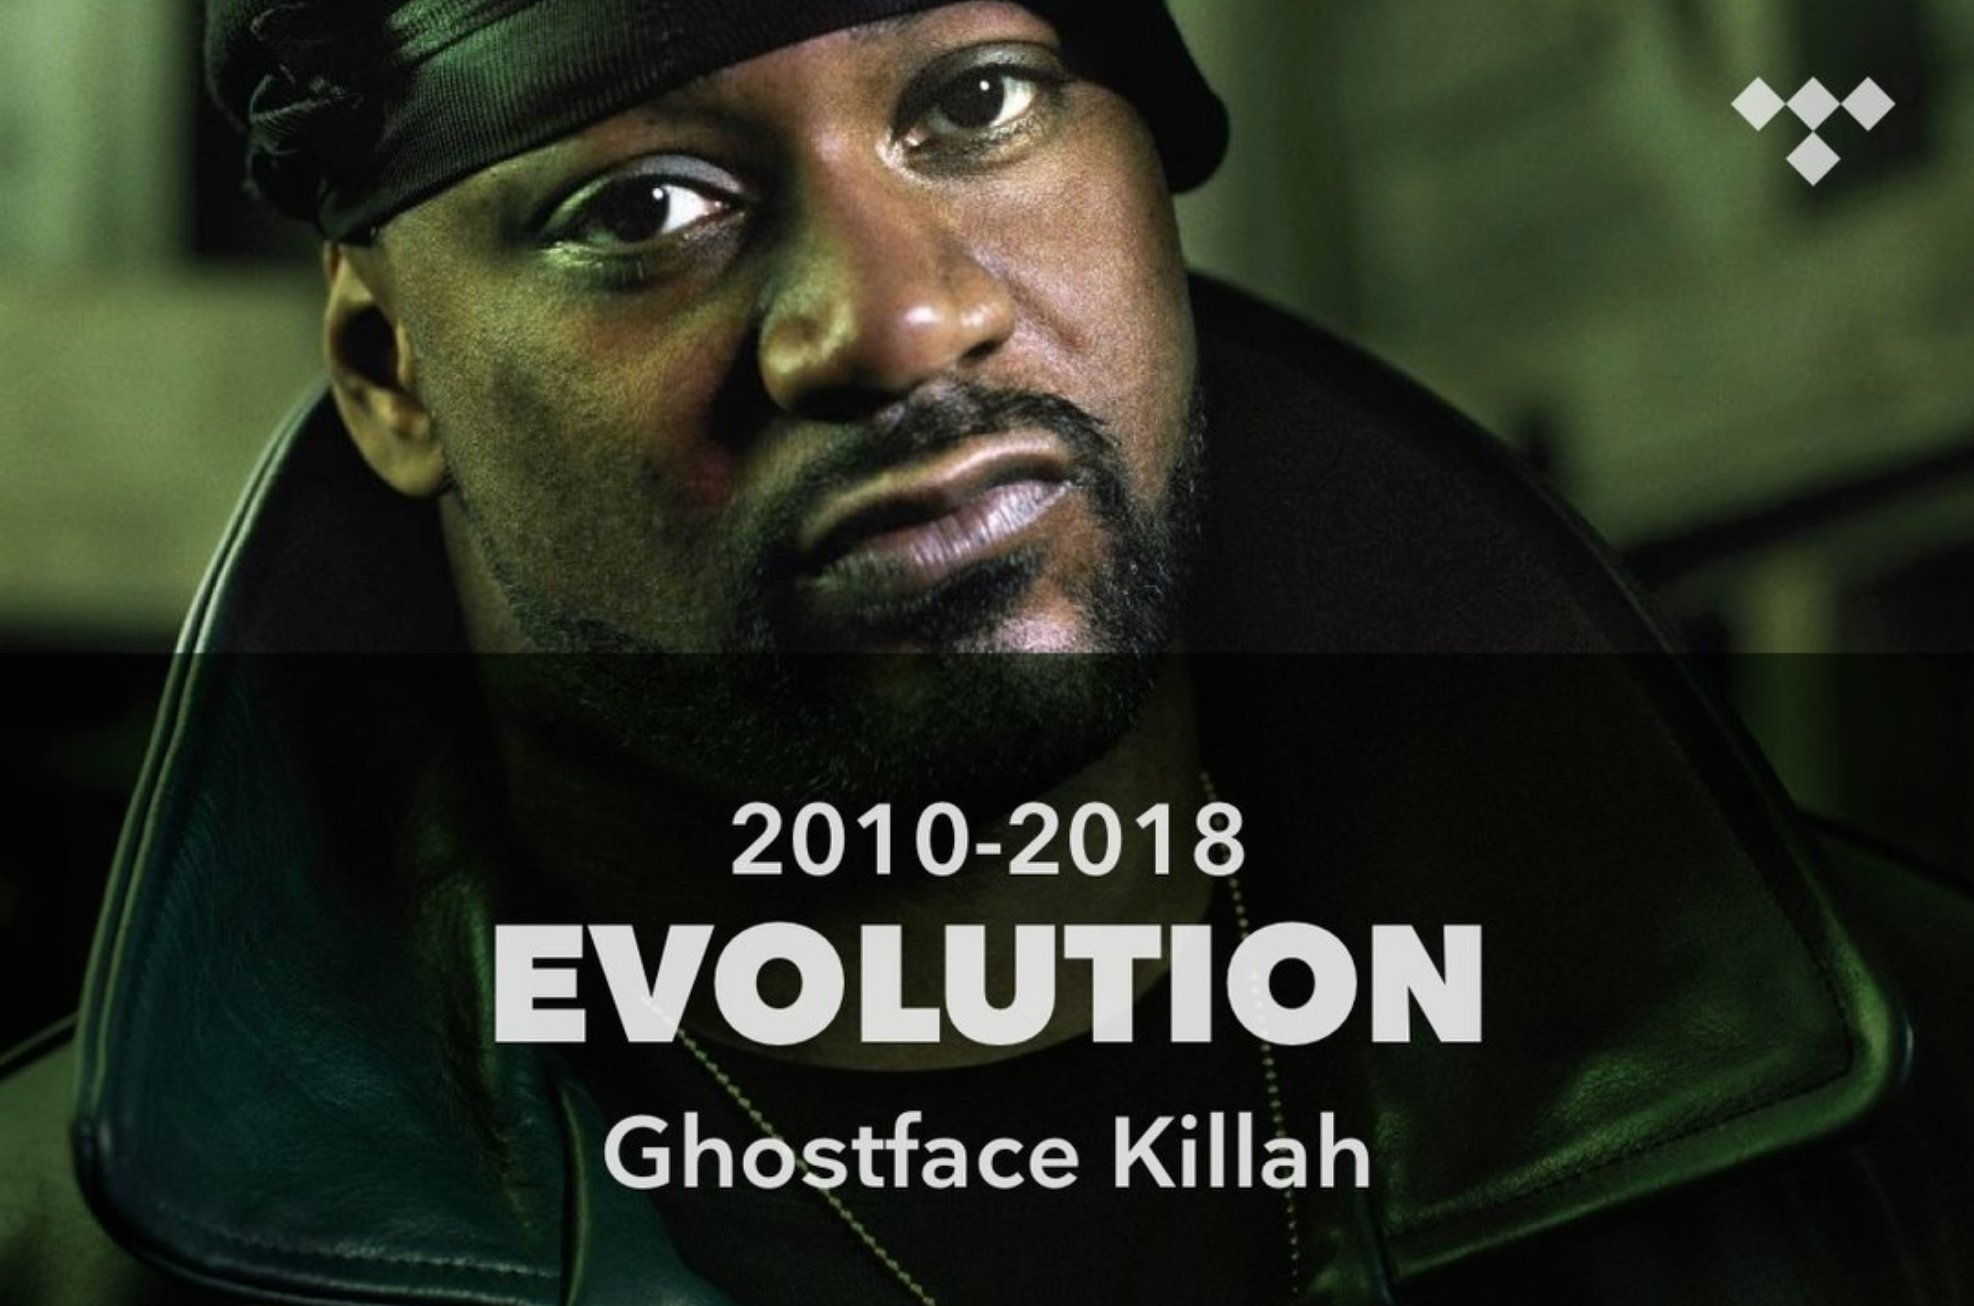 Evolution: Ghostface Killah (2010-2018) https://t.co/G89Ufq2Q1s #TIDAL https://t.co/DjGV4ZPtKr